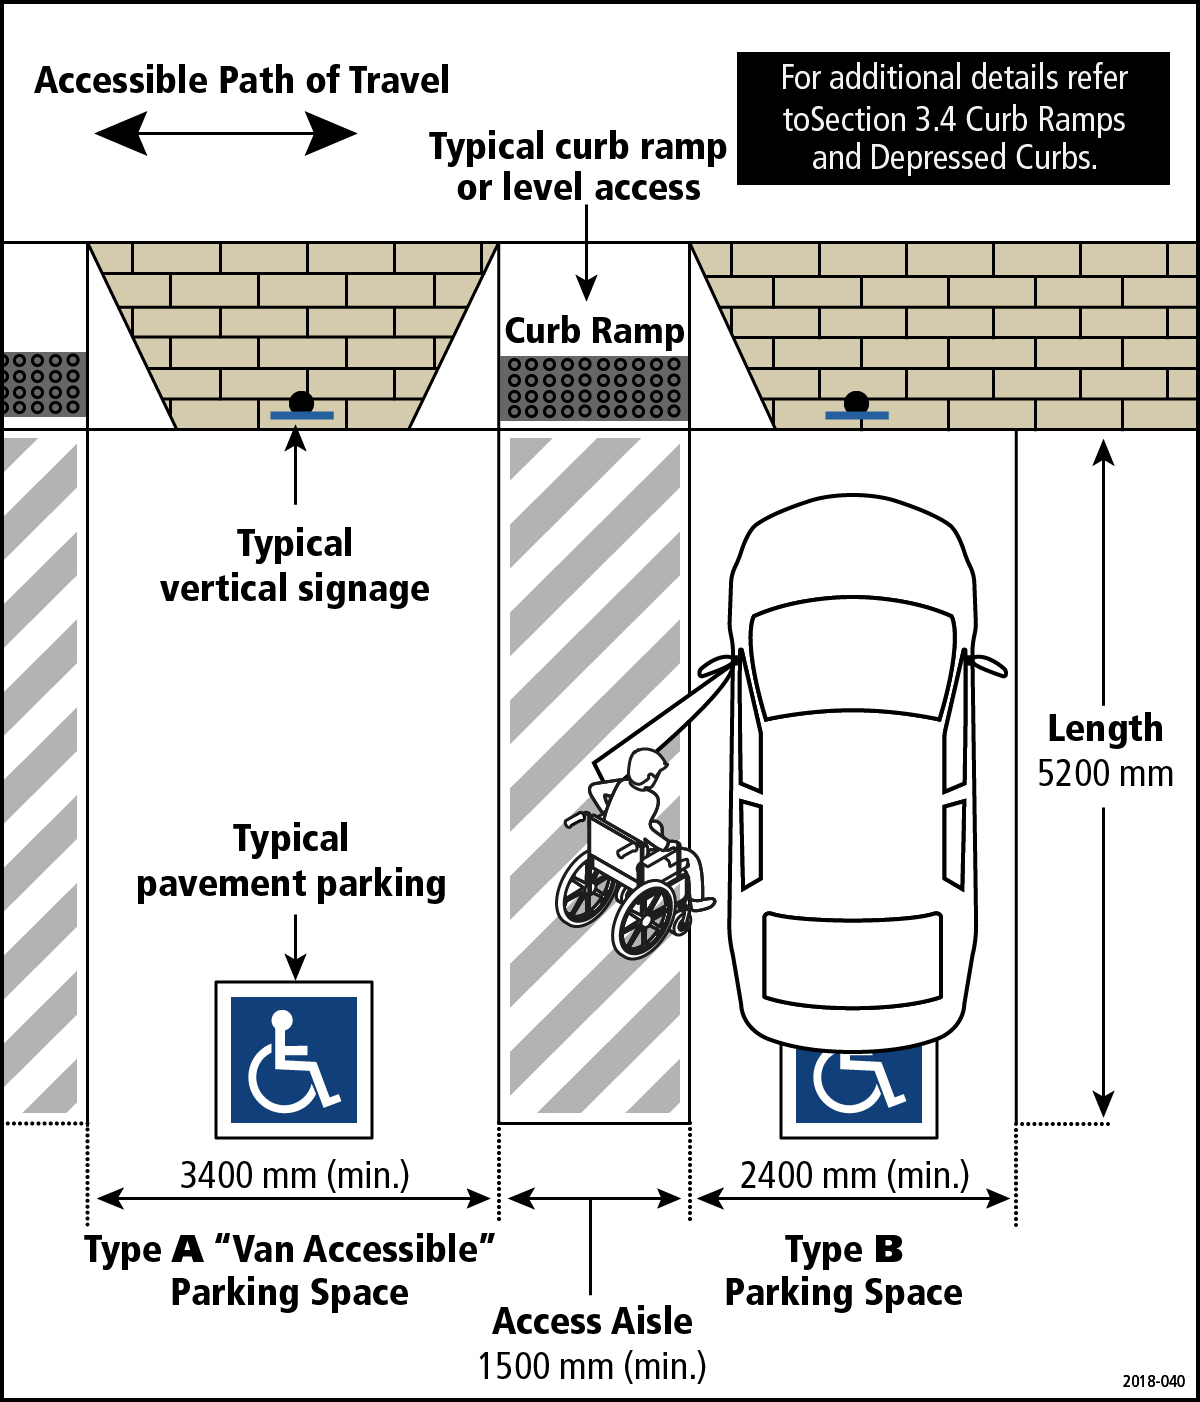 Image displays Type A and Type B parking spaces and features the access aisles required between accessible parking space